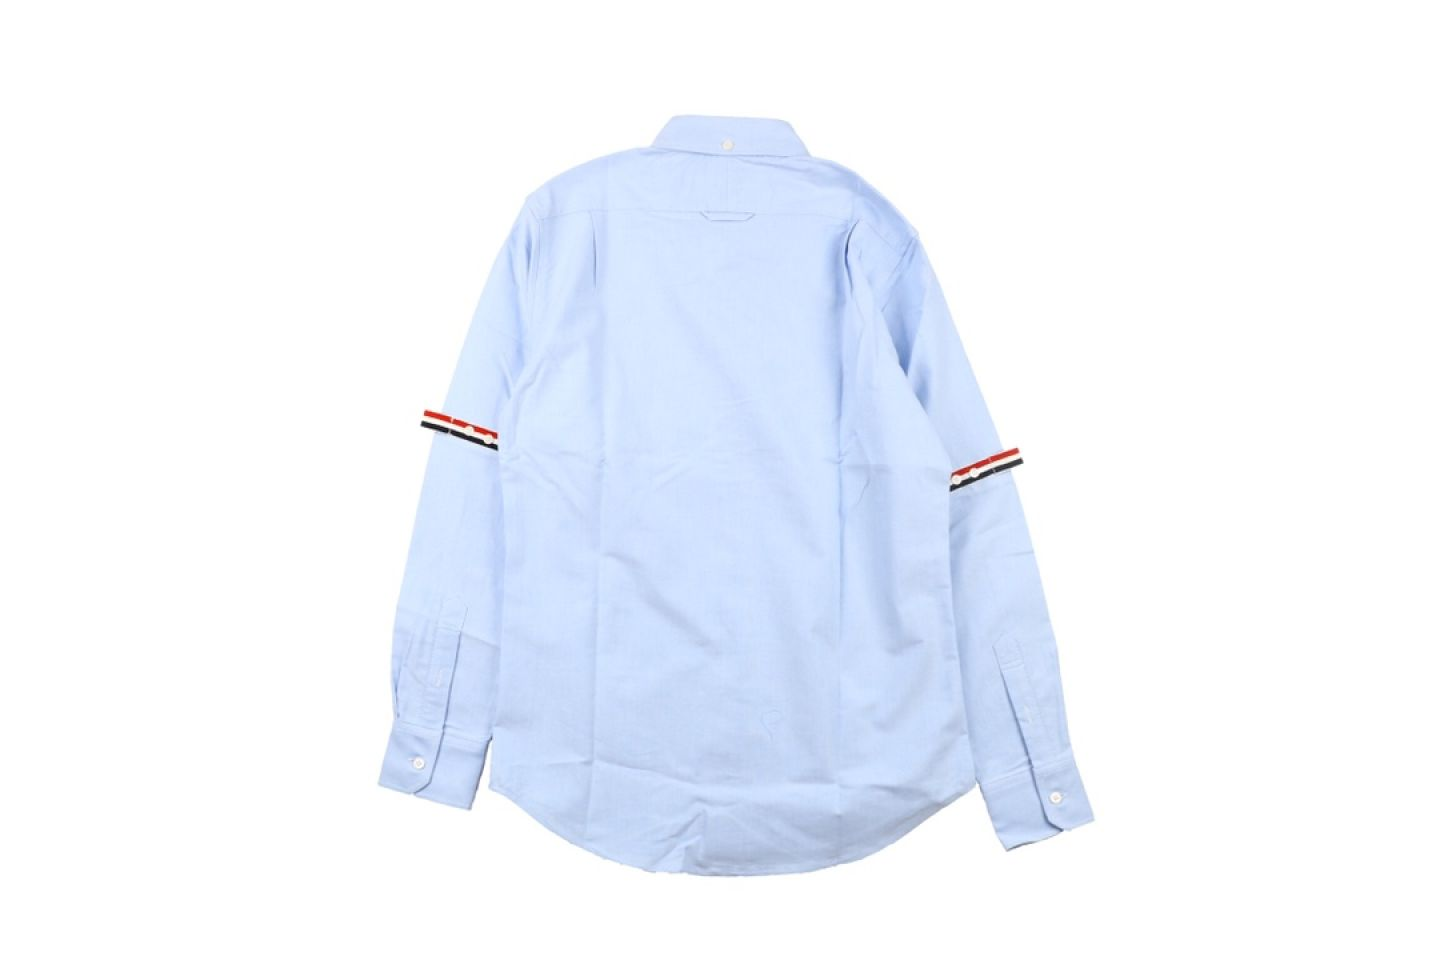 "Shirt Thom Browne 20ss arm web shirt ""Light Blue"" 5 5"